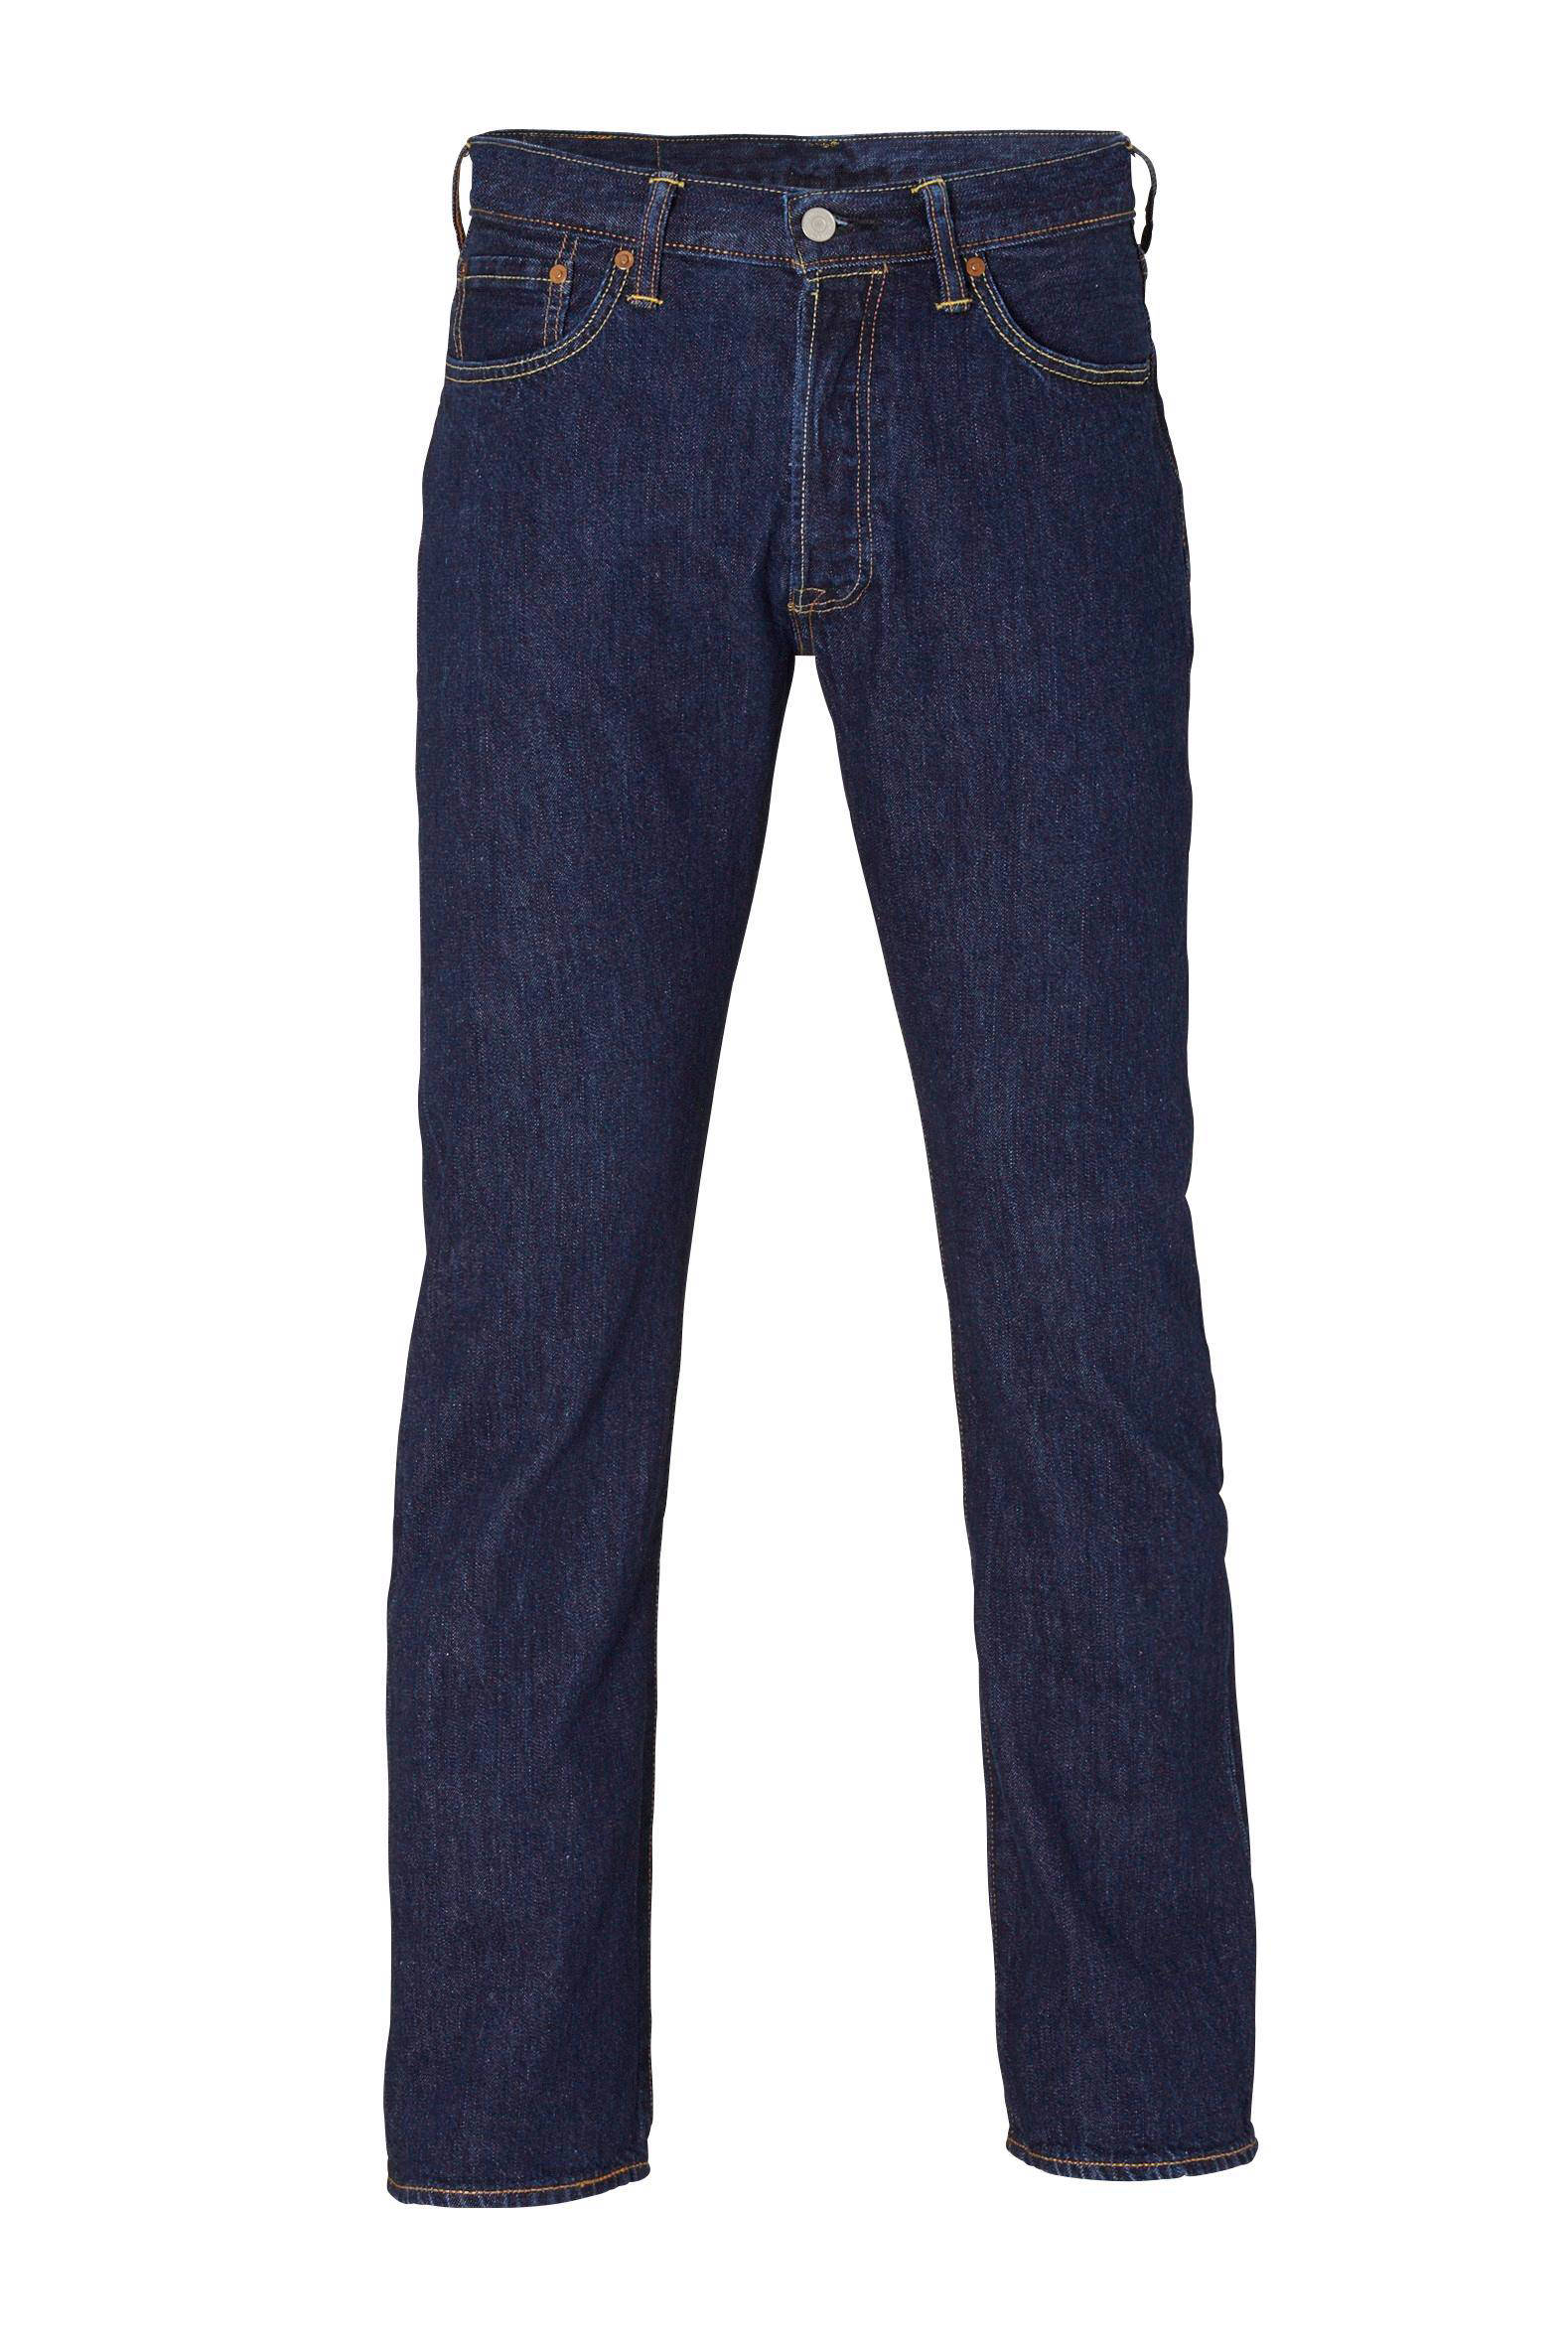 Levi's 501 original regular fit jeans (heren)